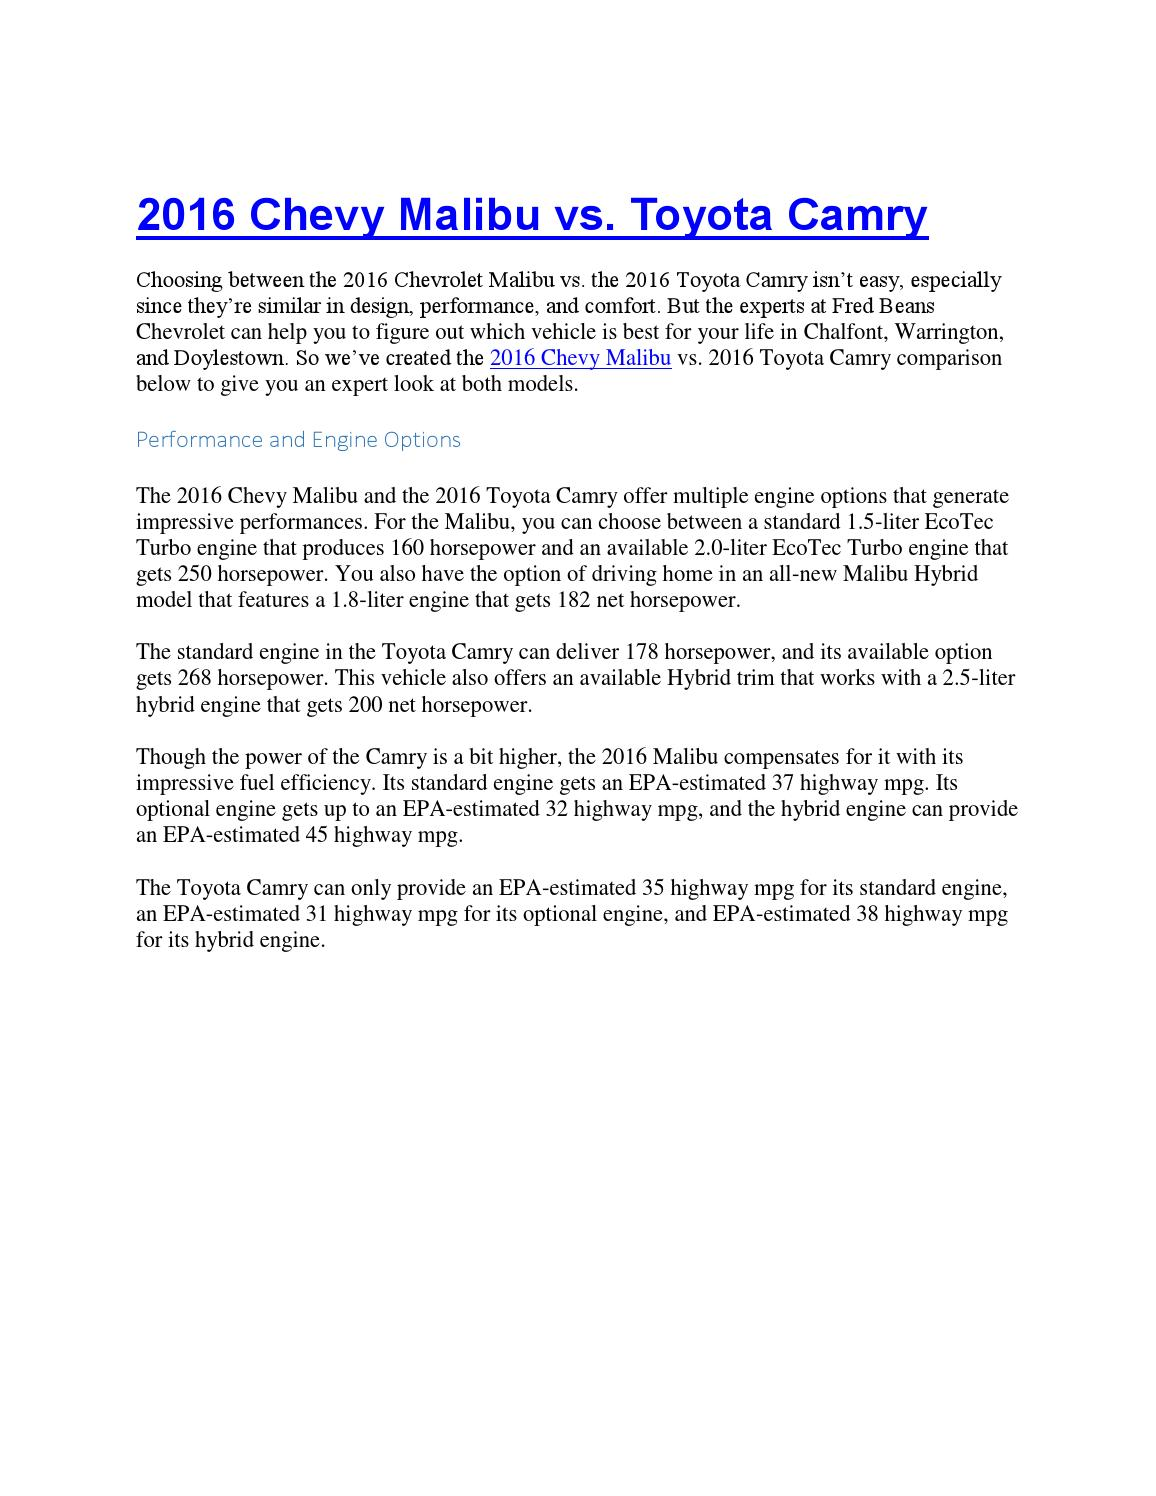 Fred Beans Chevy >> 2016 Chevy Malibu Vs Toyota Camry Fred Beans Chevy By